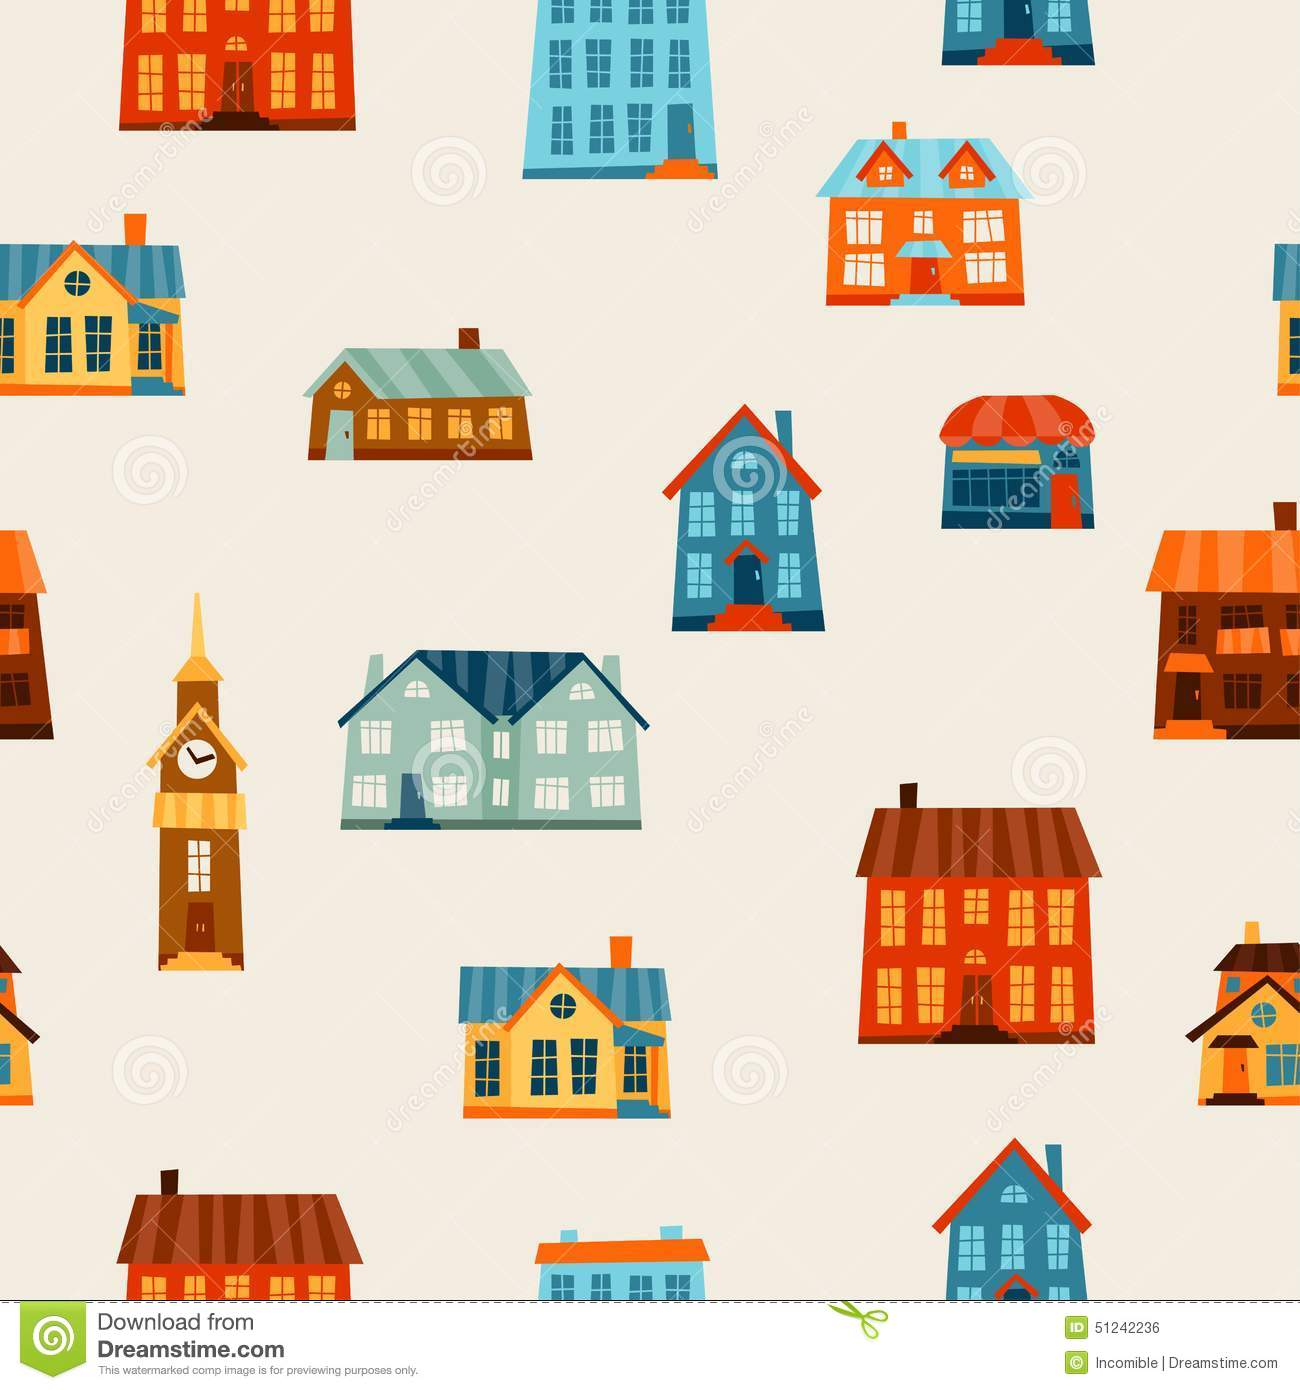 Town seamless pattern with cute colorful houses